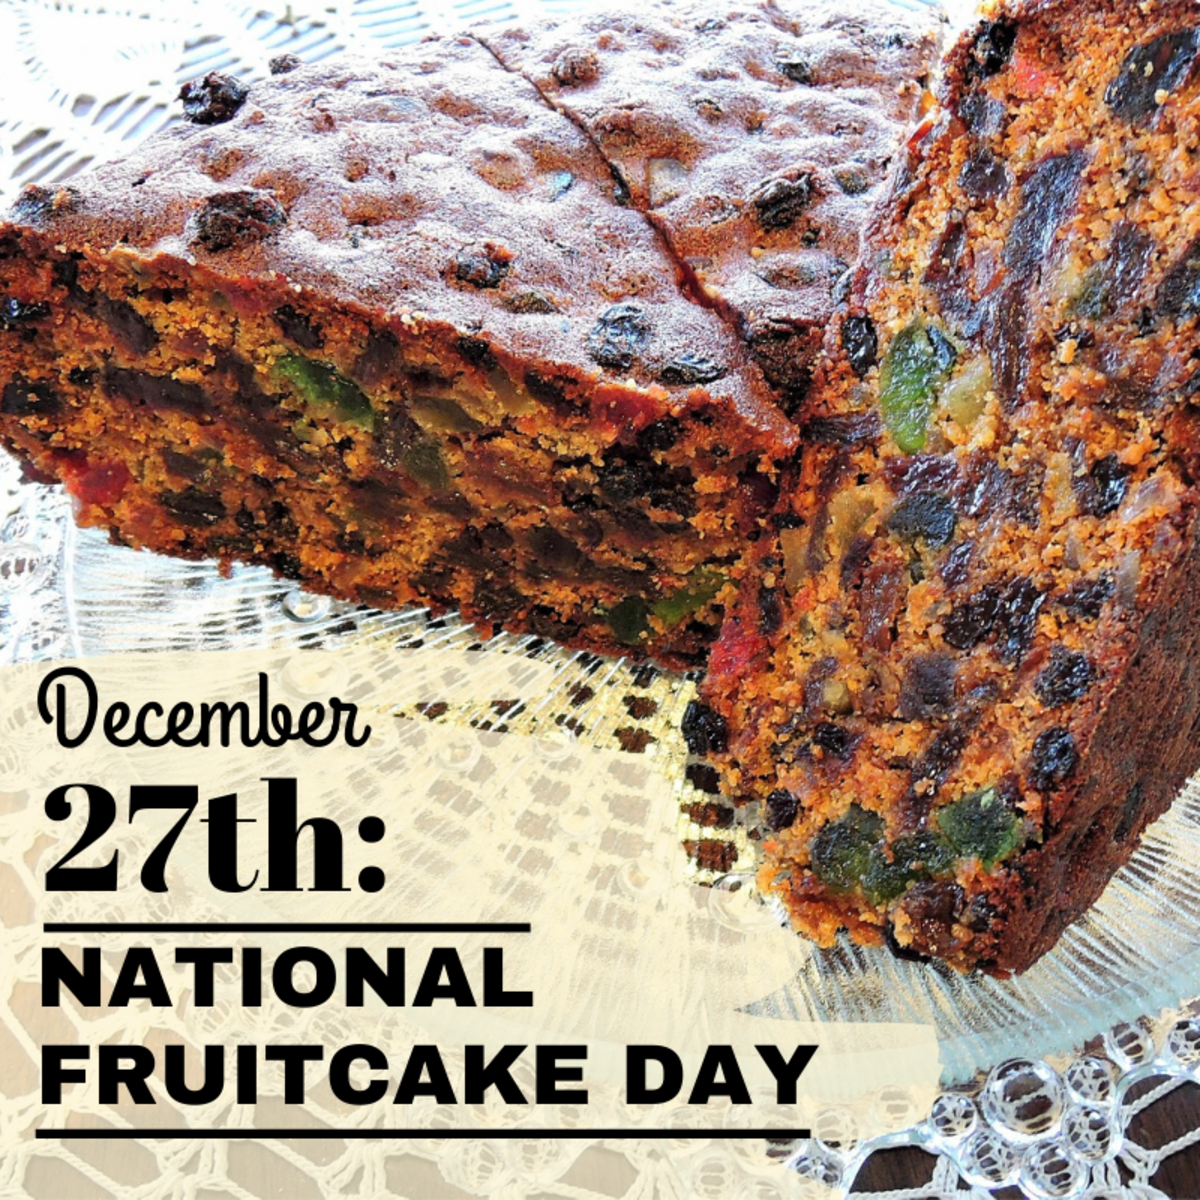 Did you know that Christmas' most polarizing dessert has its own national holiday?